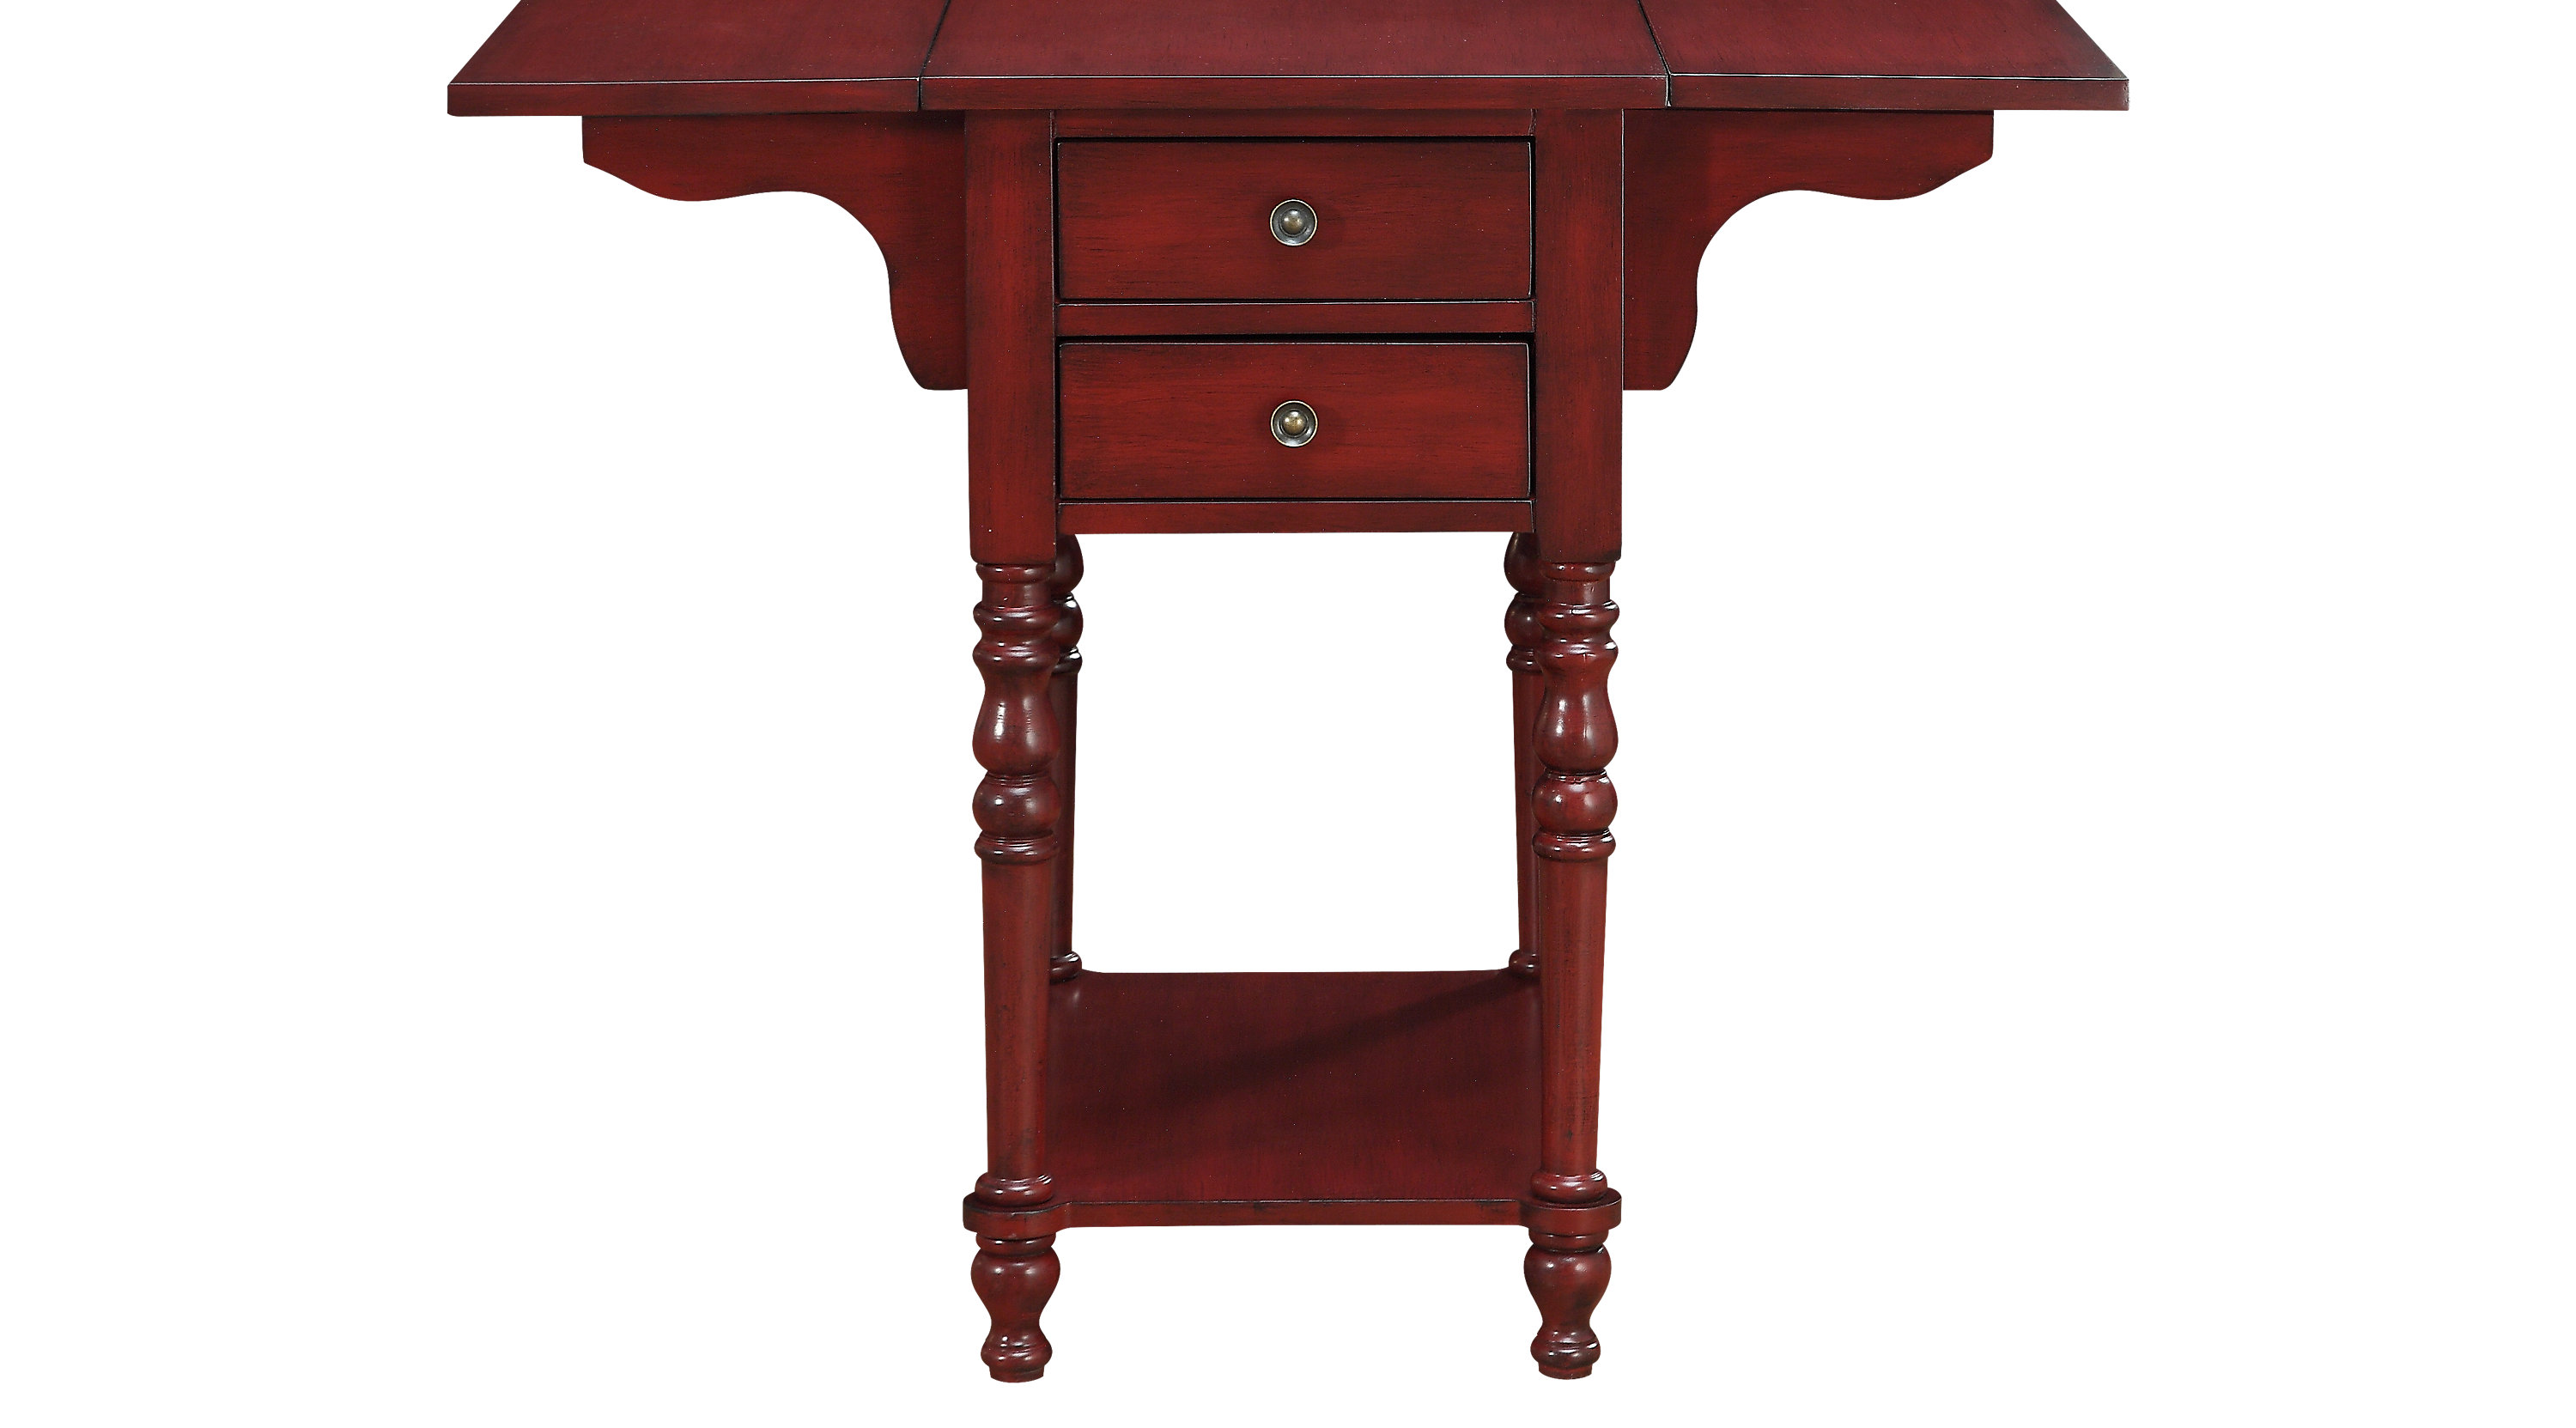 darcell red accent table marble desk pottery barn kitchen sets bunnings outdoor wedding registry ideas half moon glass large grey lamp and gold drawer round tables for living room